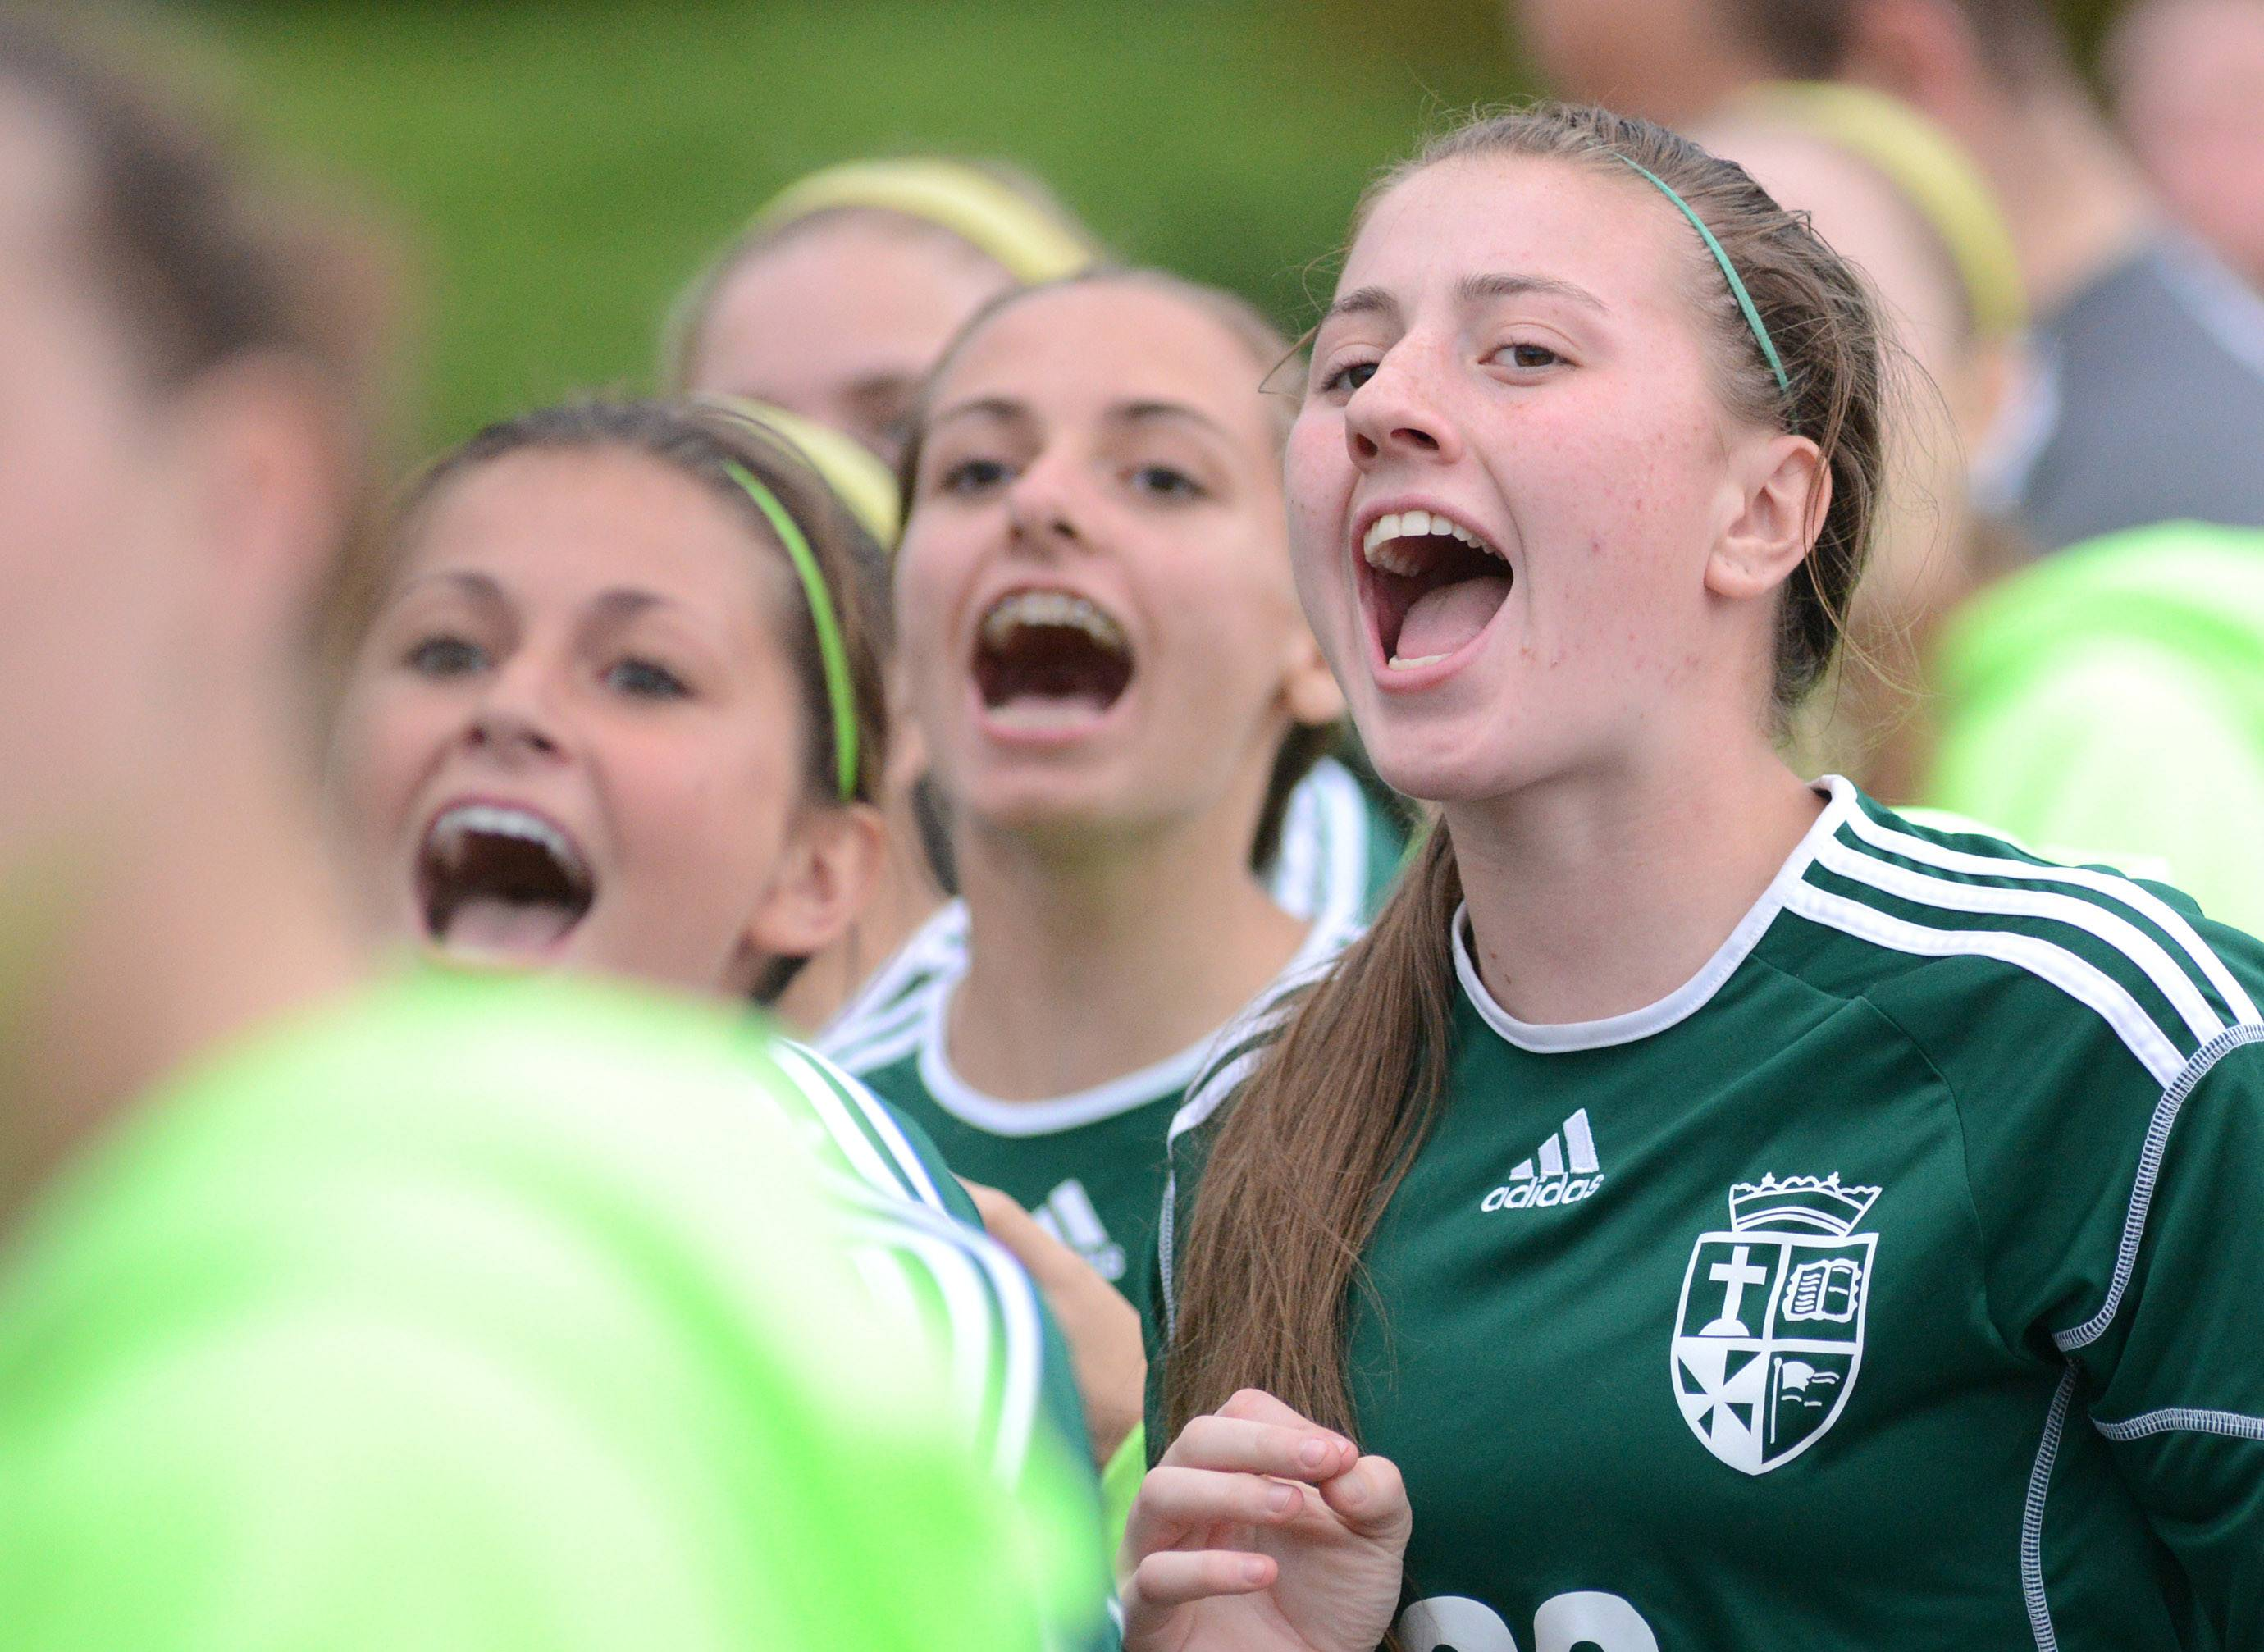 St. Edward's Gabriela Tripicchio, far right, and teammates count down the let 10 seconds on the clock to their 4-0 win over Chicago Latin in the Class 1A supersectional at Concordia University in River Forest on Tuesday.